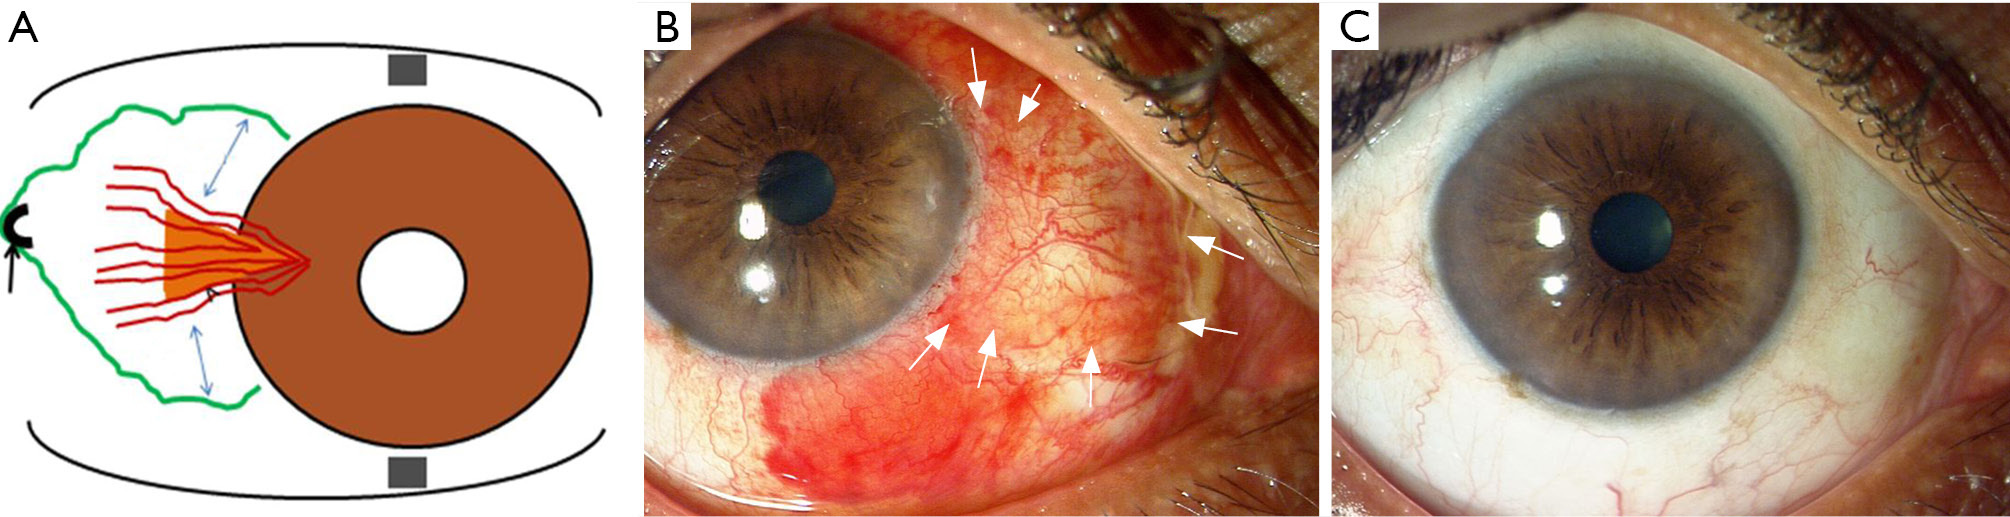 Patch graft for pterygium surgery: stitch it or stick it